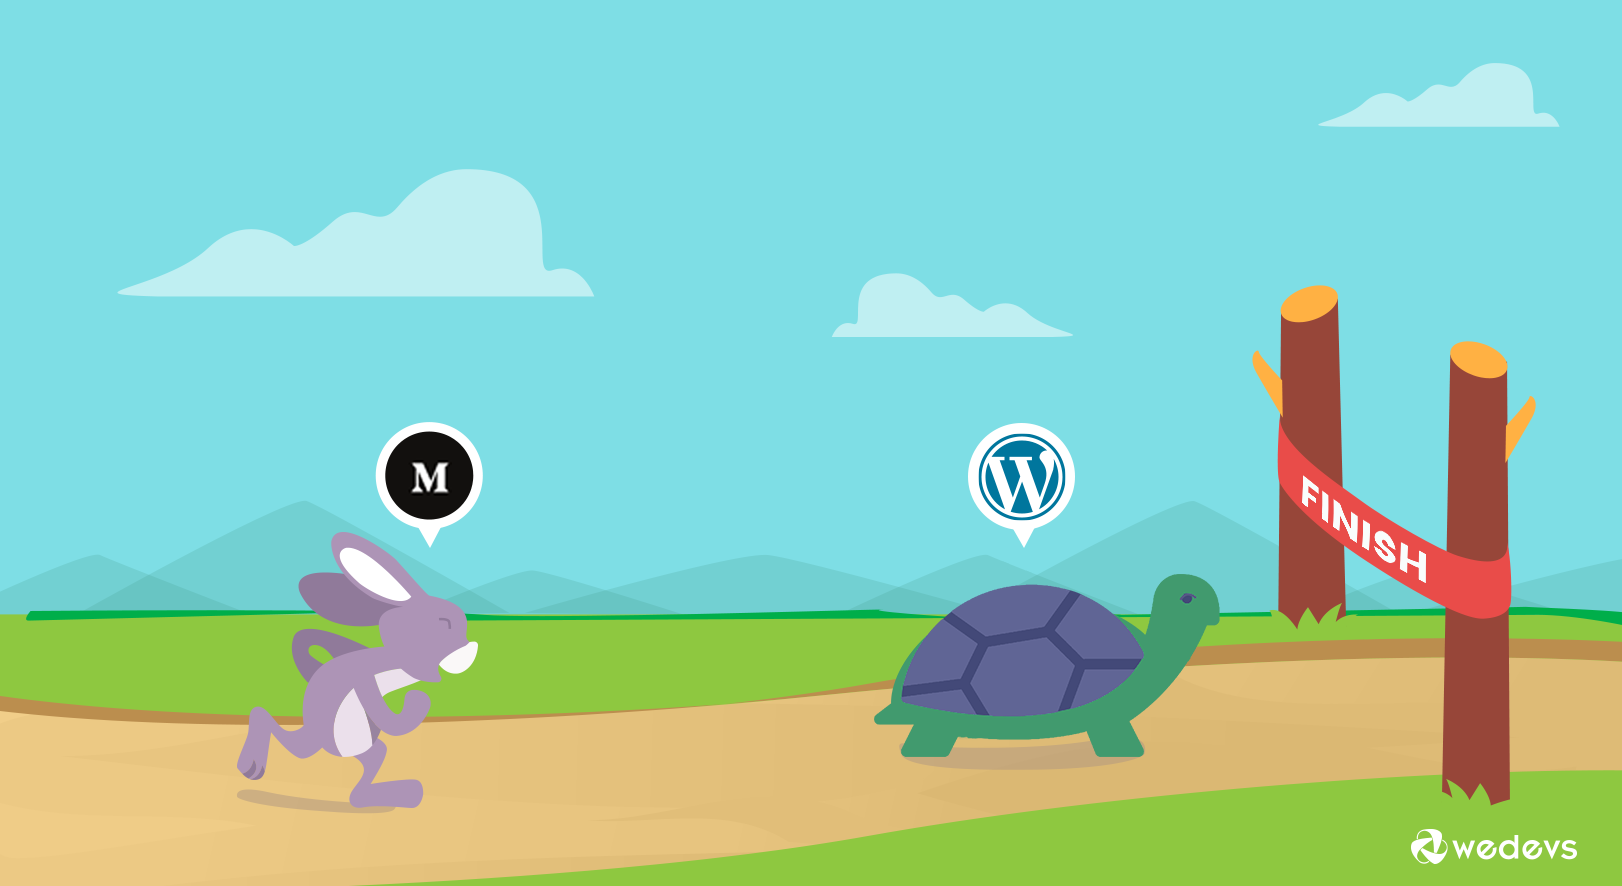 WordPress vs. Medium: Comparing Apples & Oranges?